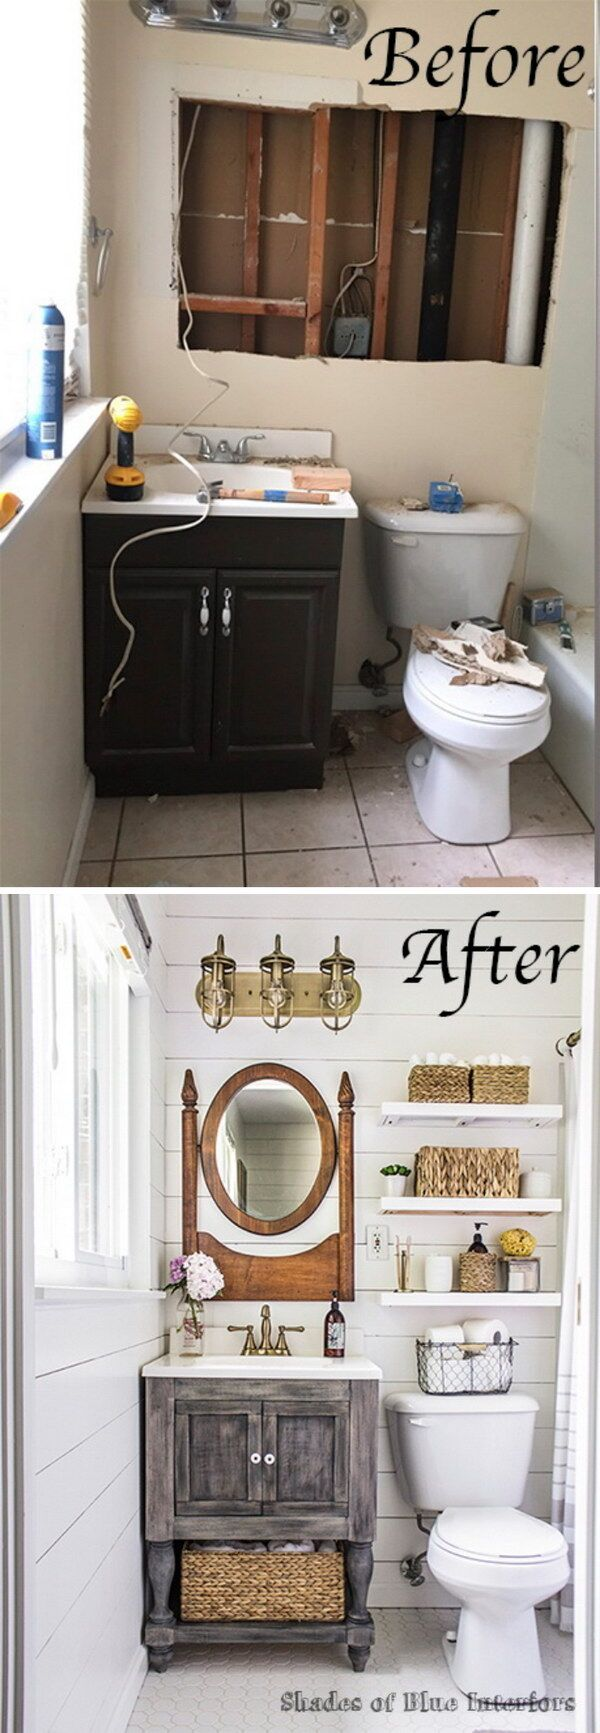 Before and After Master Bathroom Makeover.